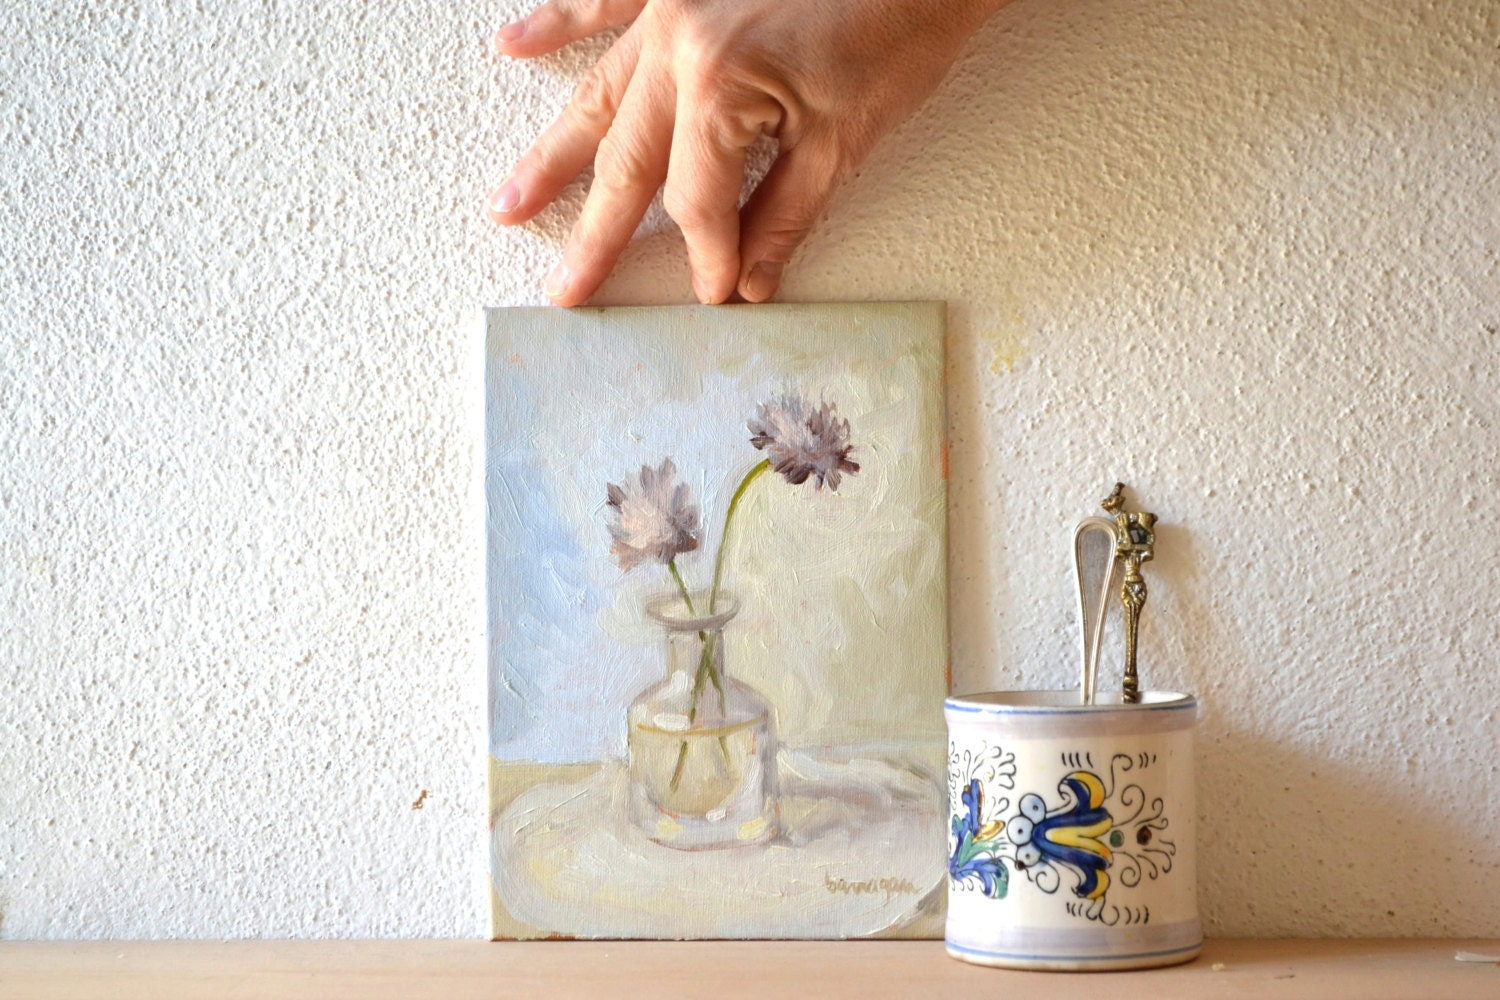 Purple Flower Still-life Oil Painting, floral painting, cottage decor, french provincial, wedding gift, country wedding gift, special dates - BarraganPaintings